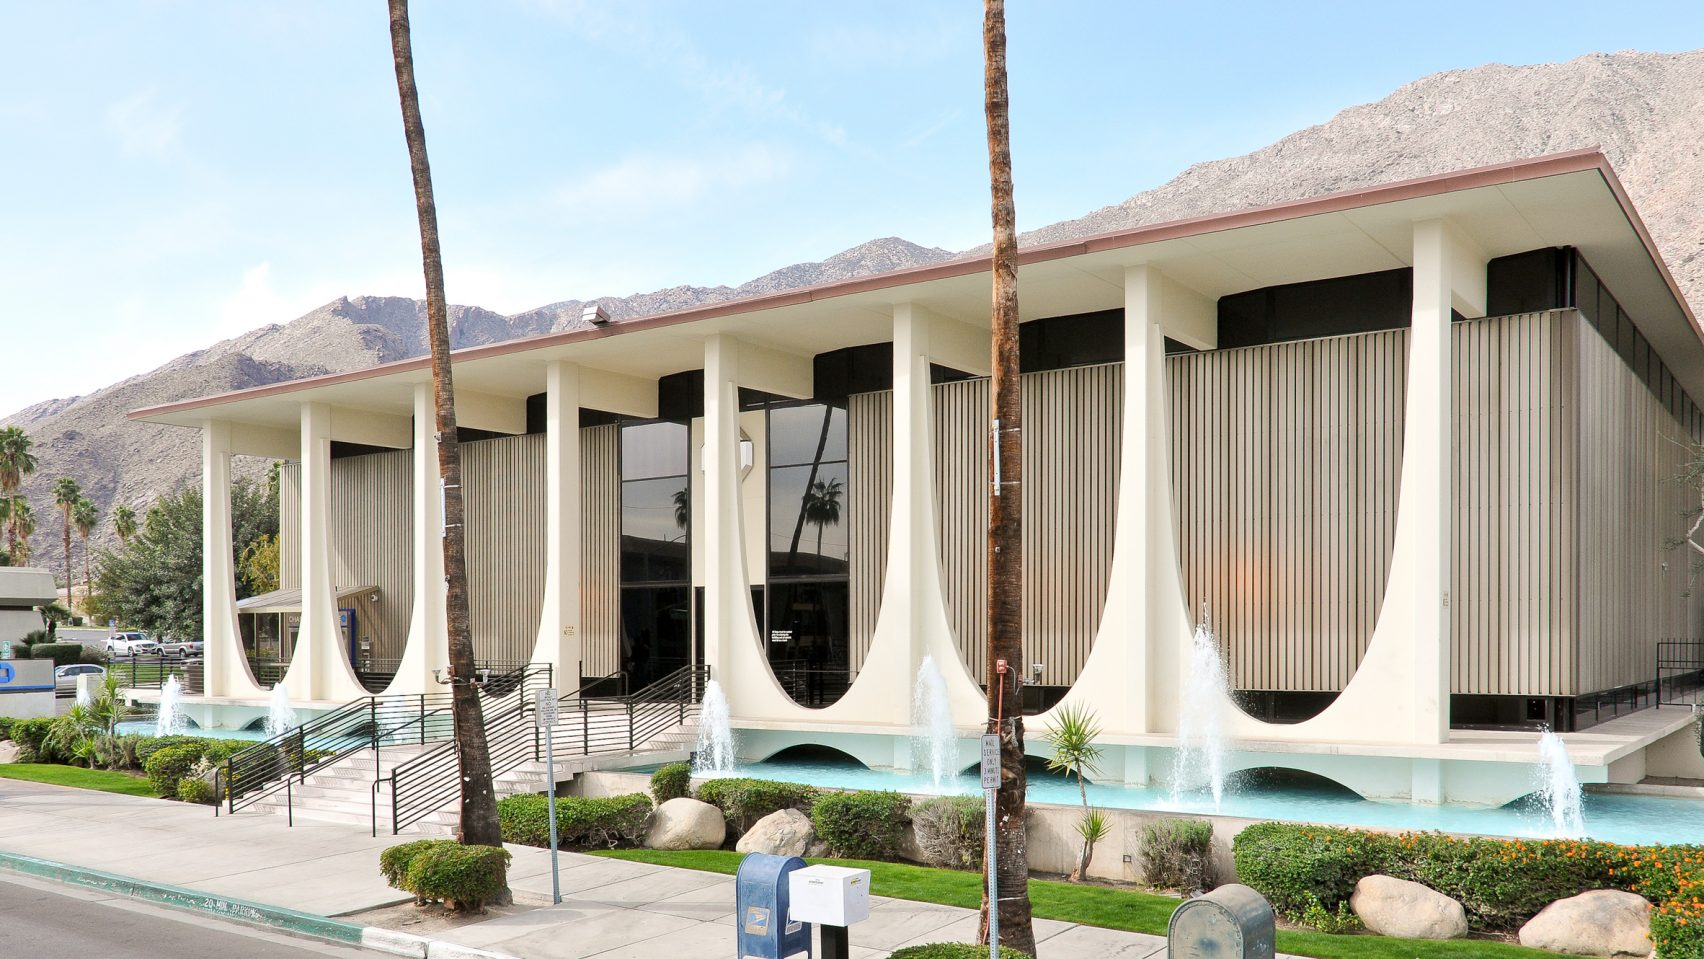 coachella valley savingse-stewart-williams-bank-mid-century-palm-springs-modernism-week_dezeen_hero-1704x959.jpg